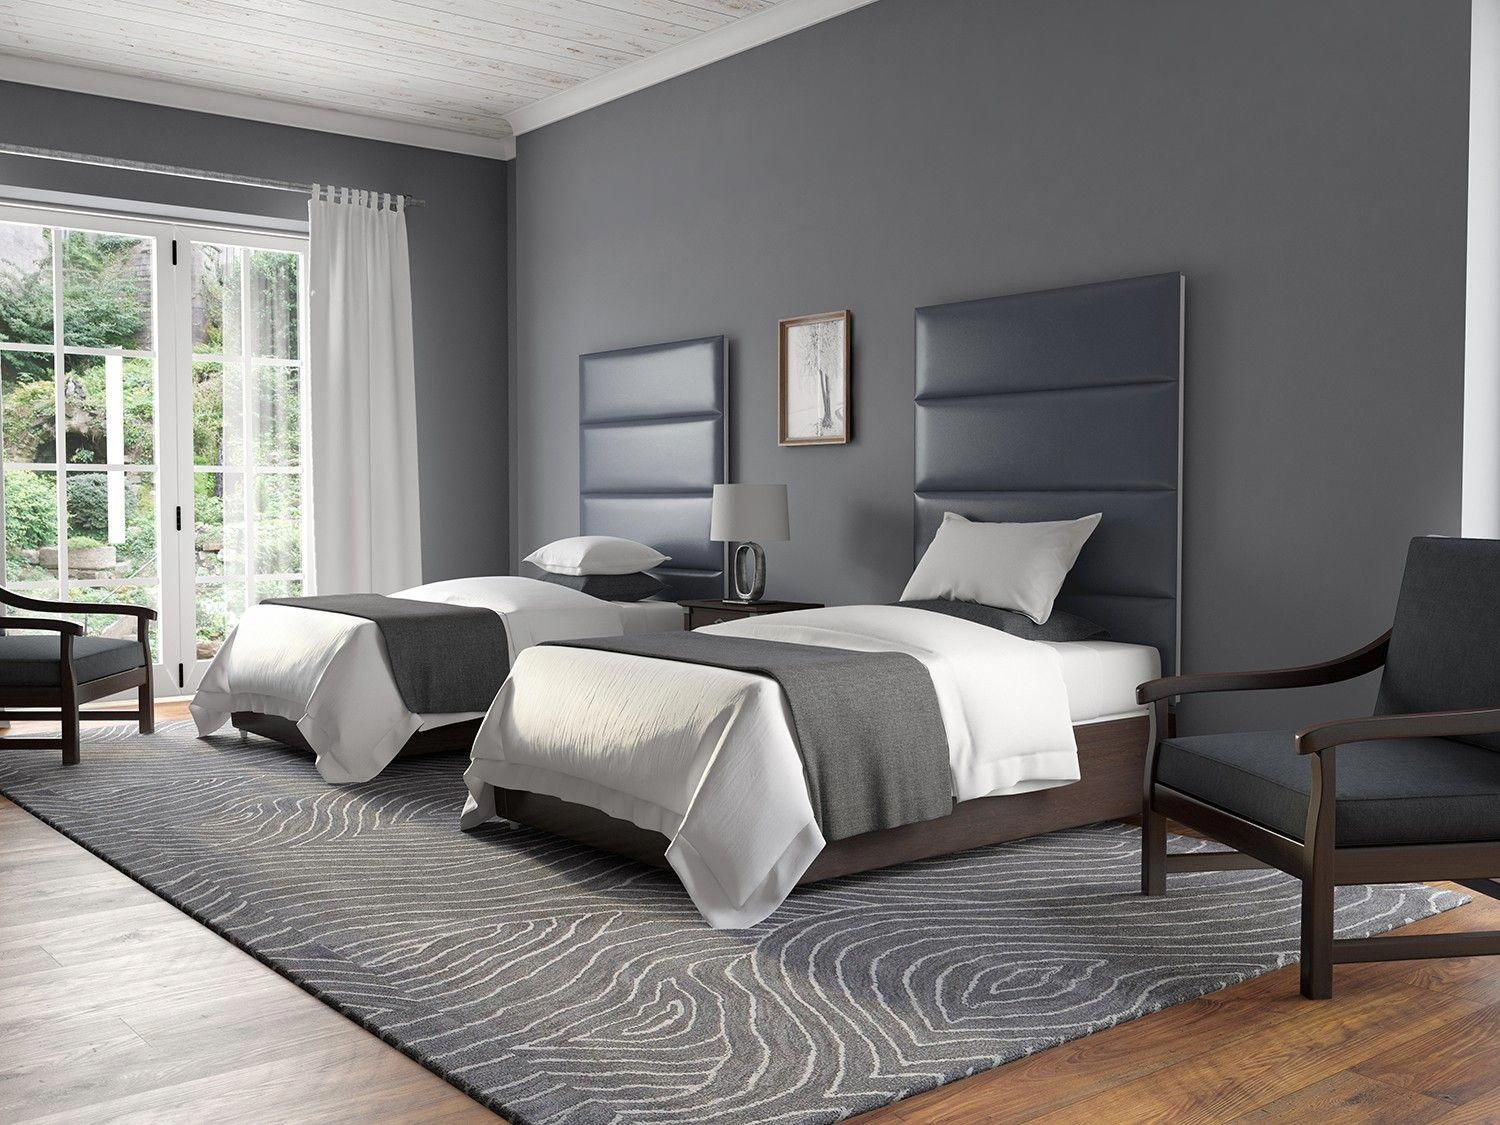 22 Marvelous Techniques For boysbedroomgreen in 2020